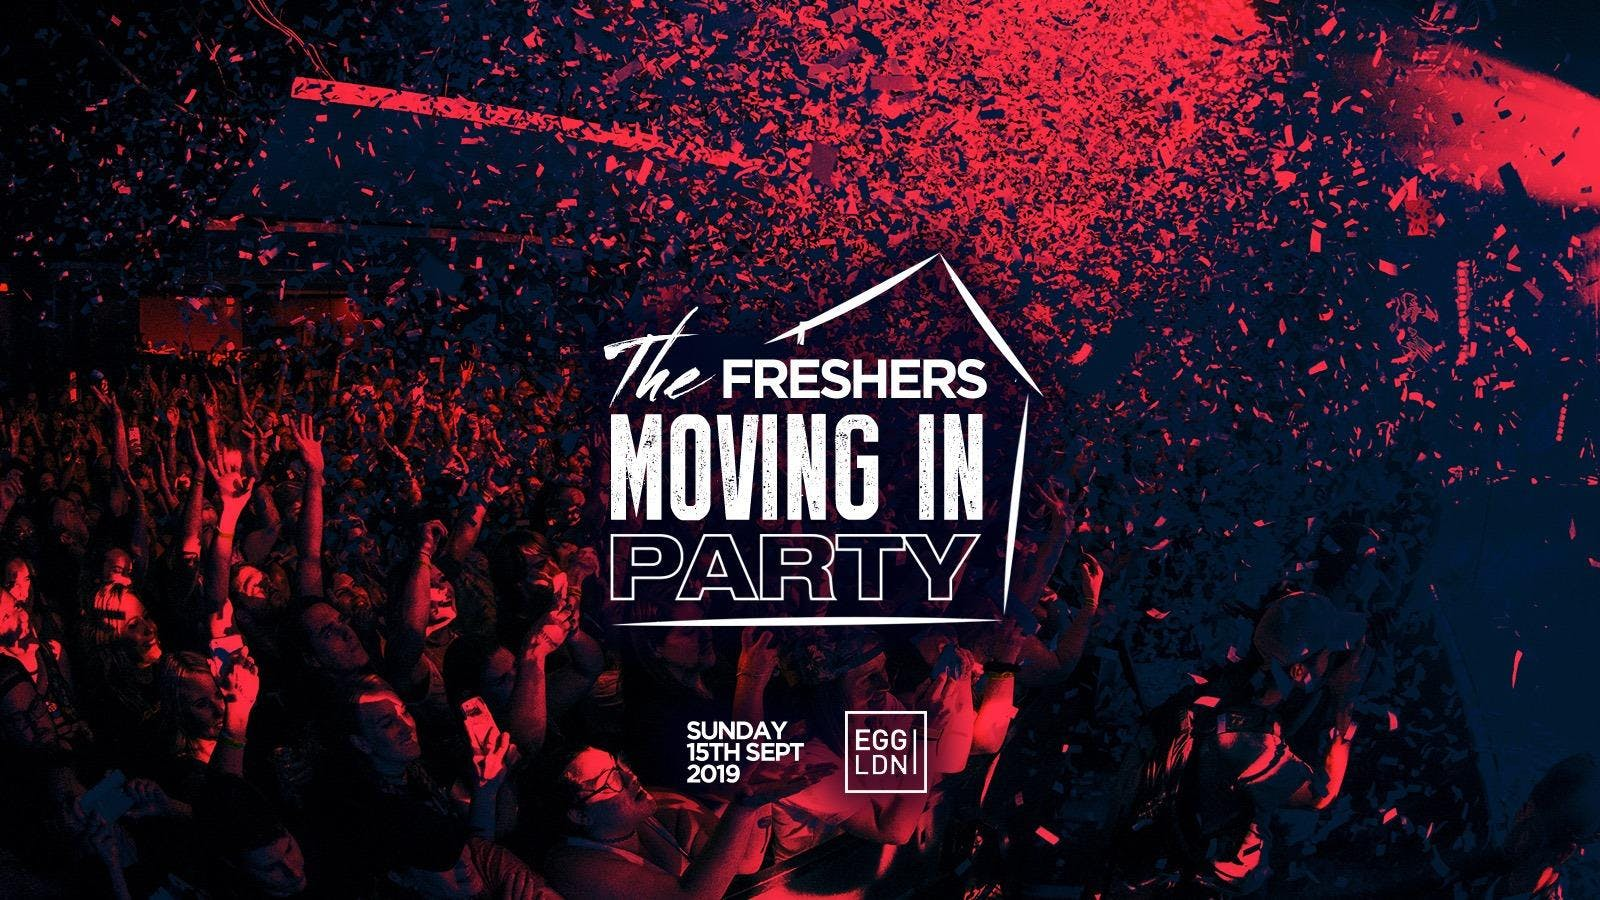 The 2019 Official London Freshers Moving in Party at Egg London